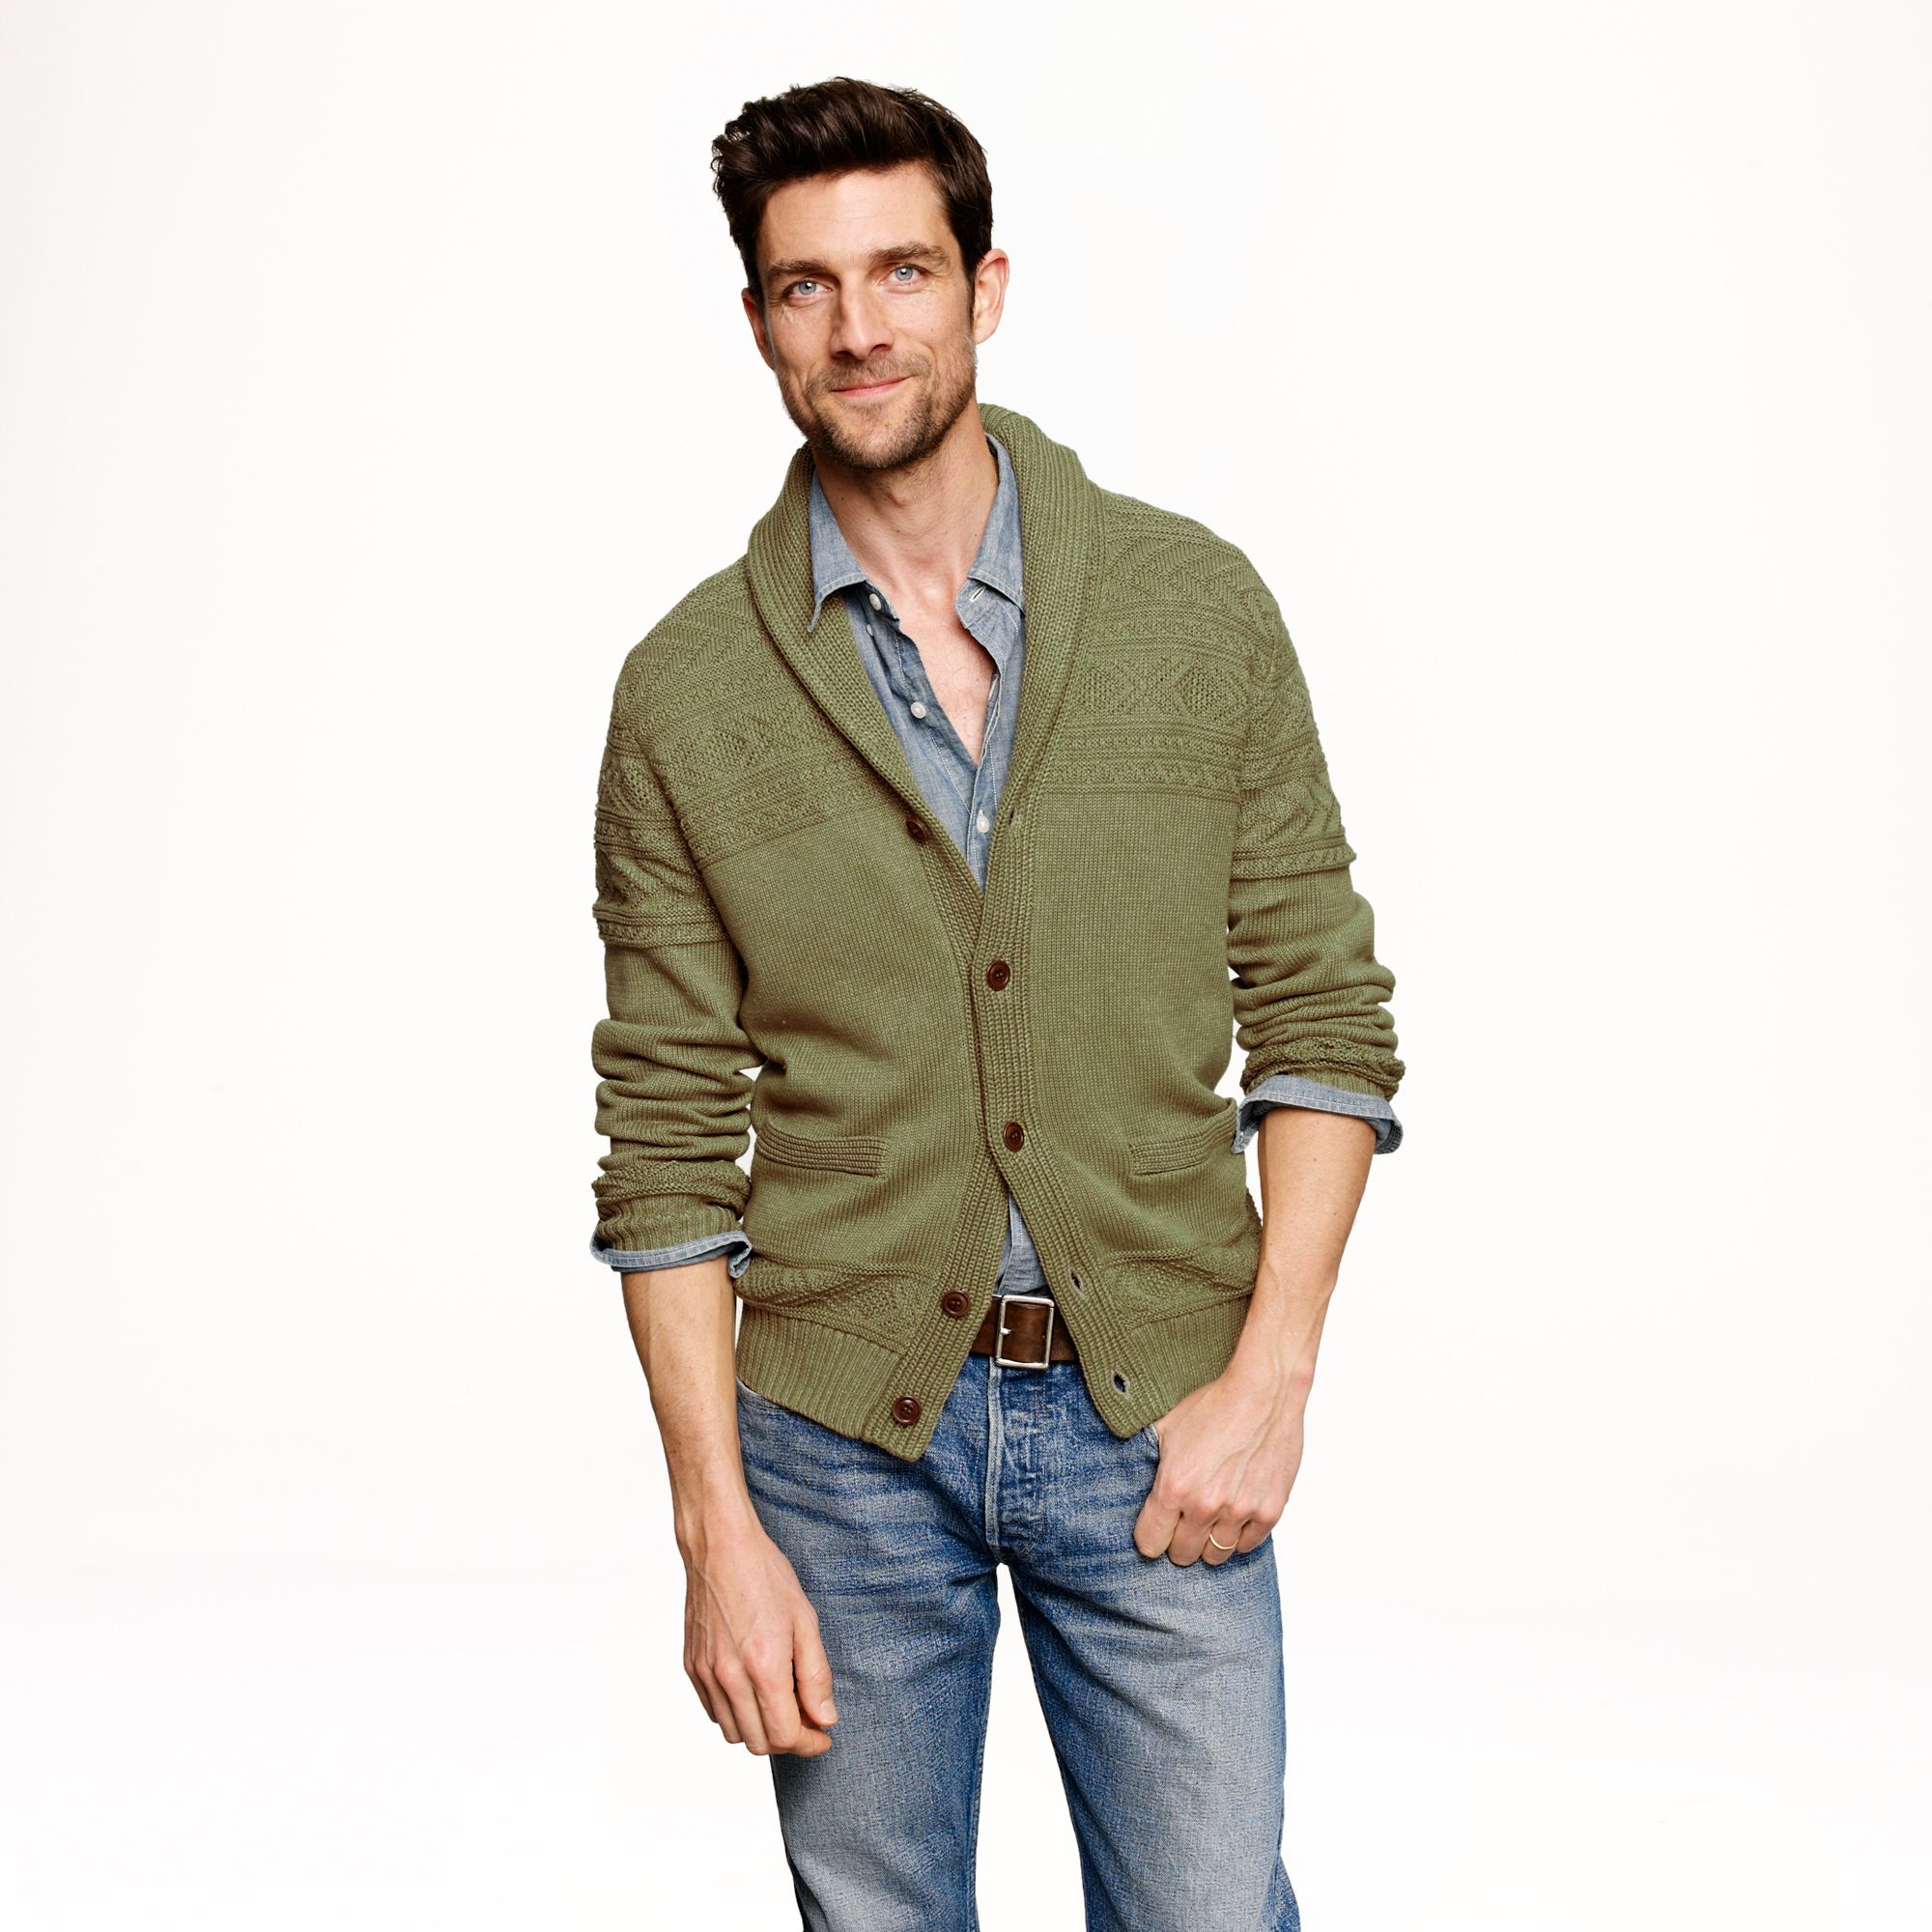 J.crew Wallace Barnes Guernsey Shawl Sweater In Green For